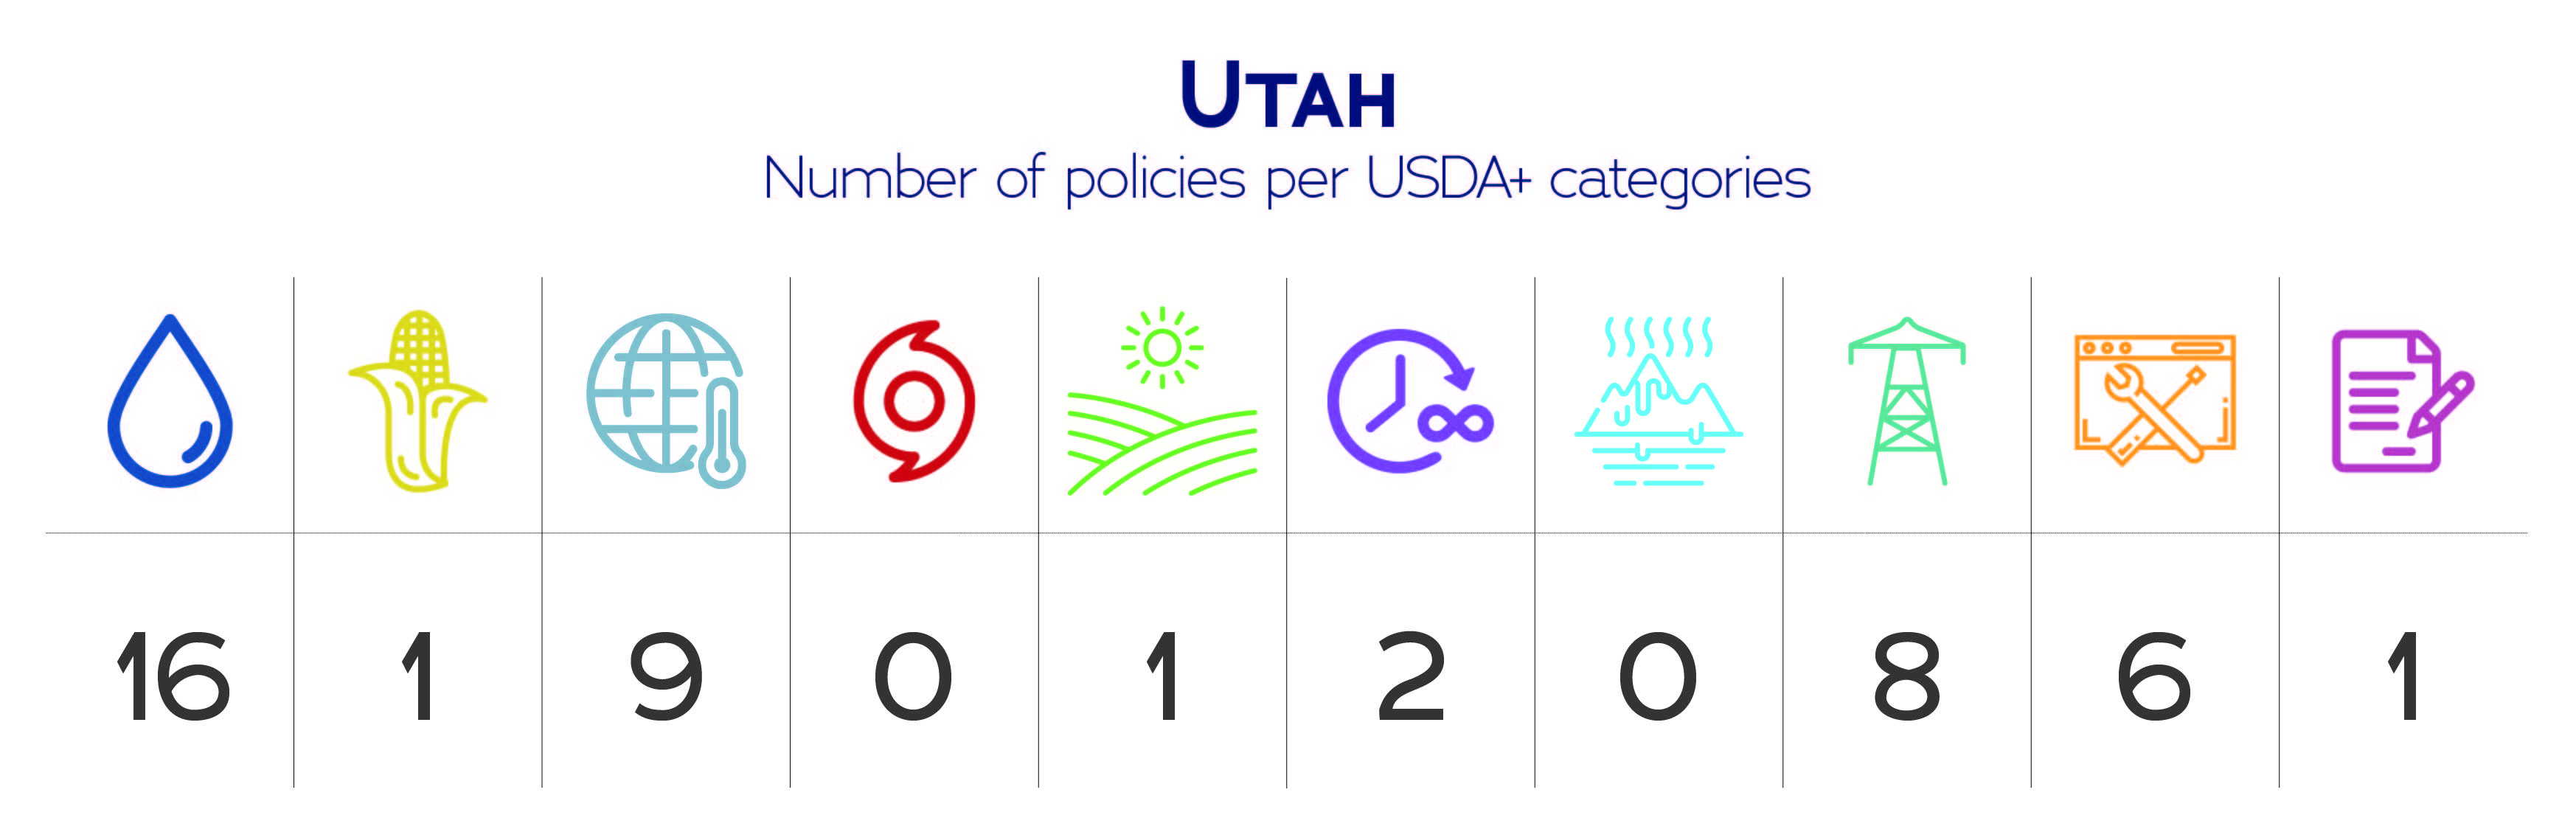 Utah USDA+ category data